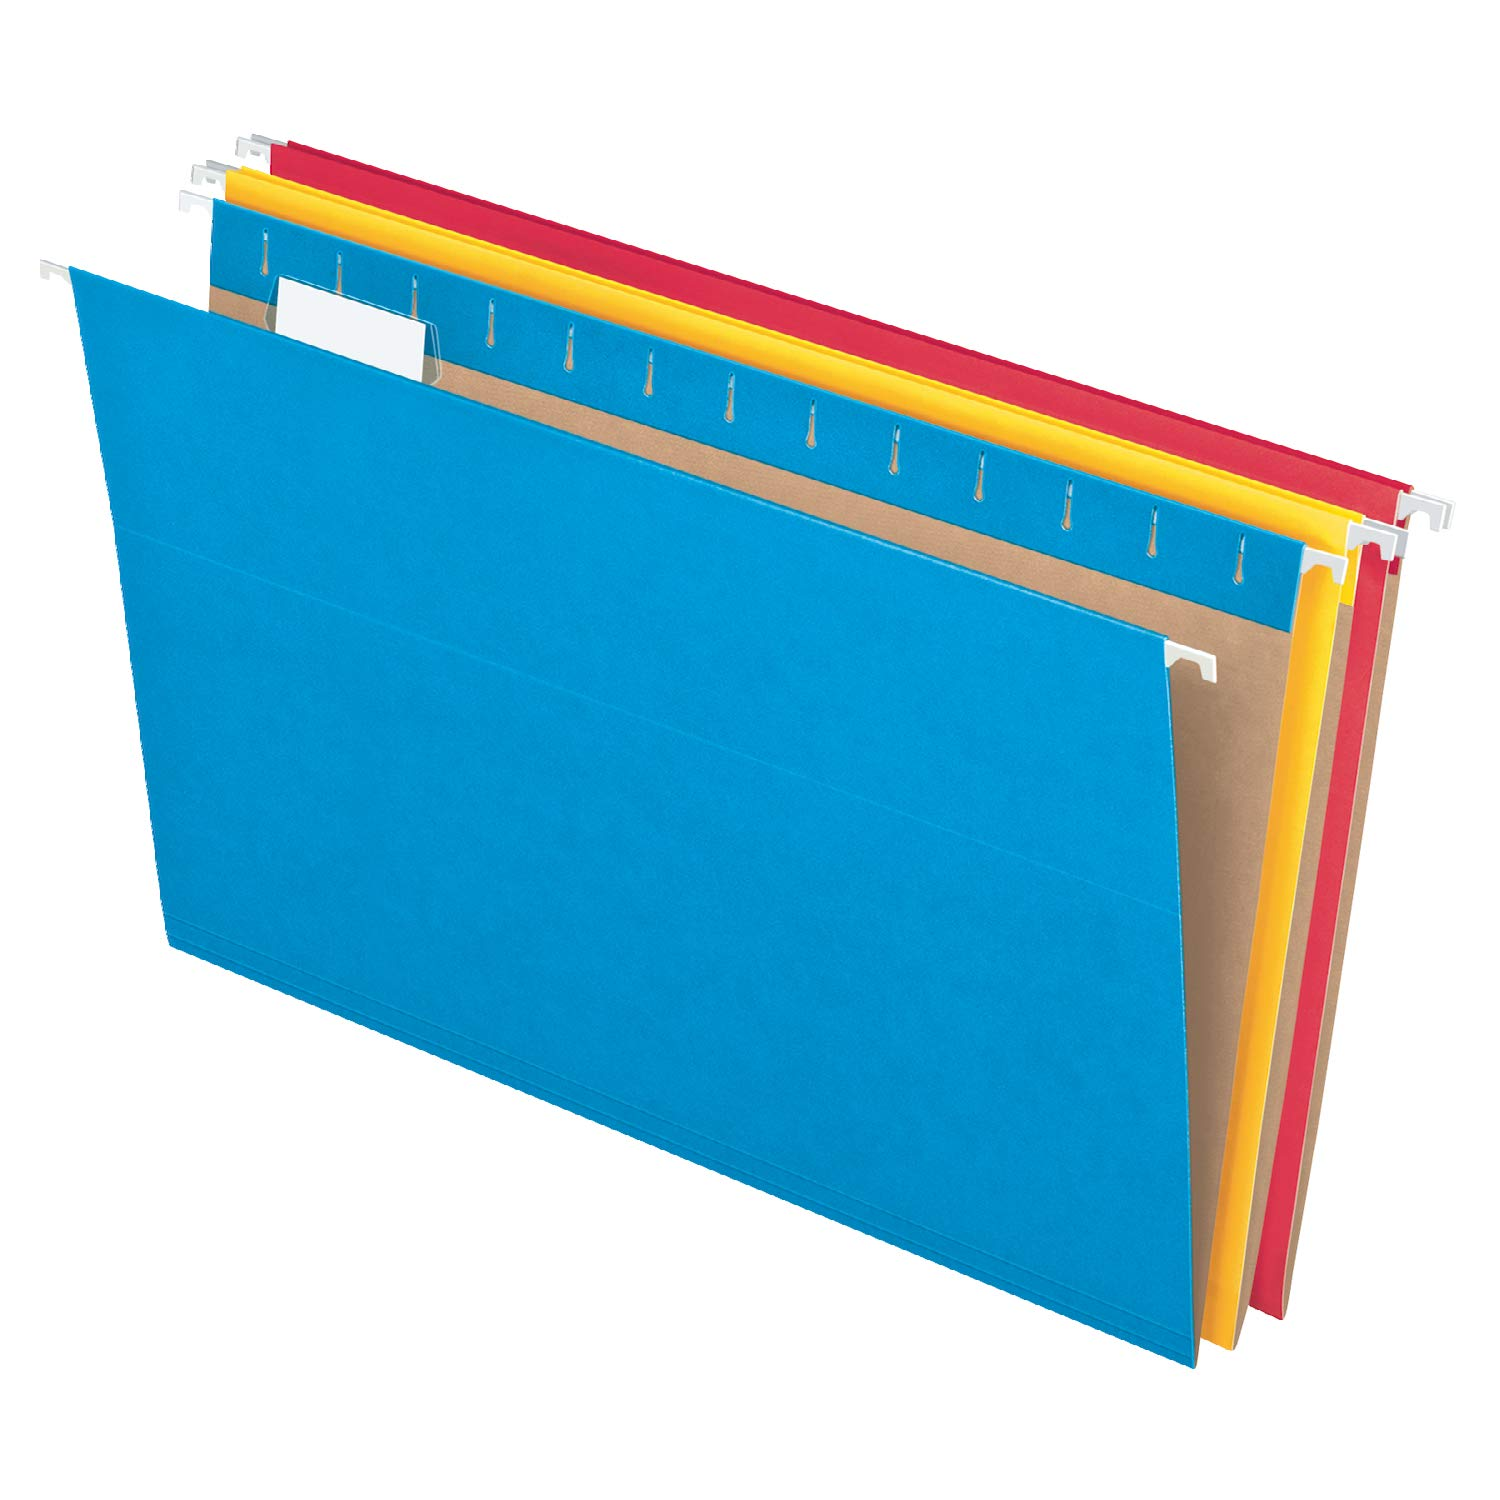 Pendaflex Recycled Hanging Folders, Legal Size, Assorted Colors, 1/5 Cut, 25/BX (81632) by Pendaflex